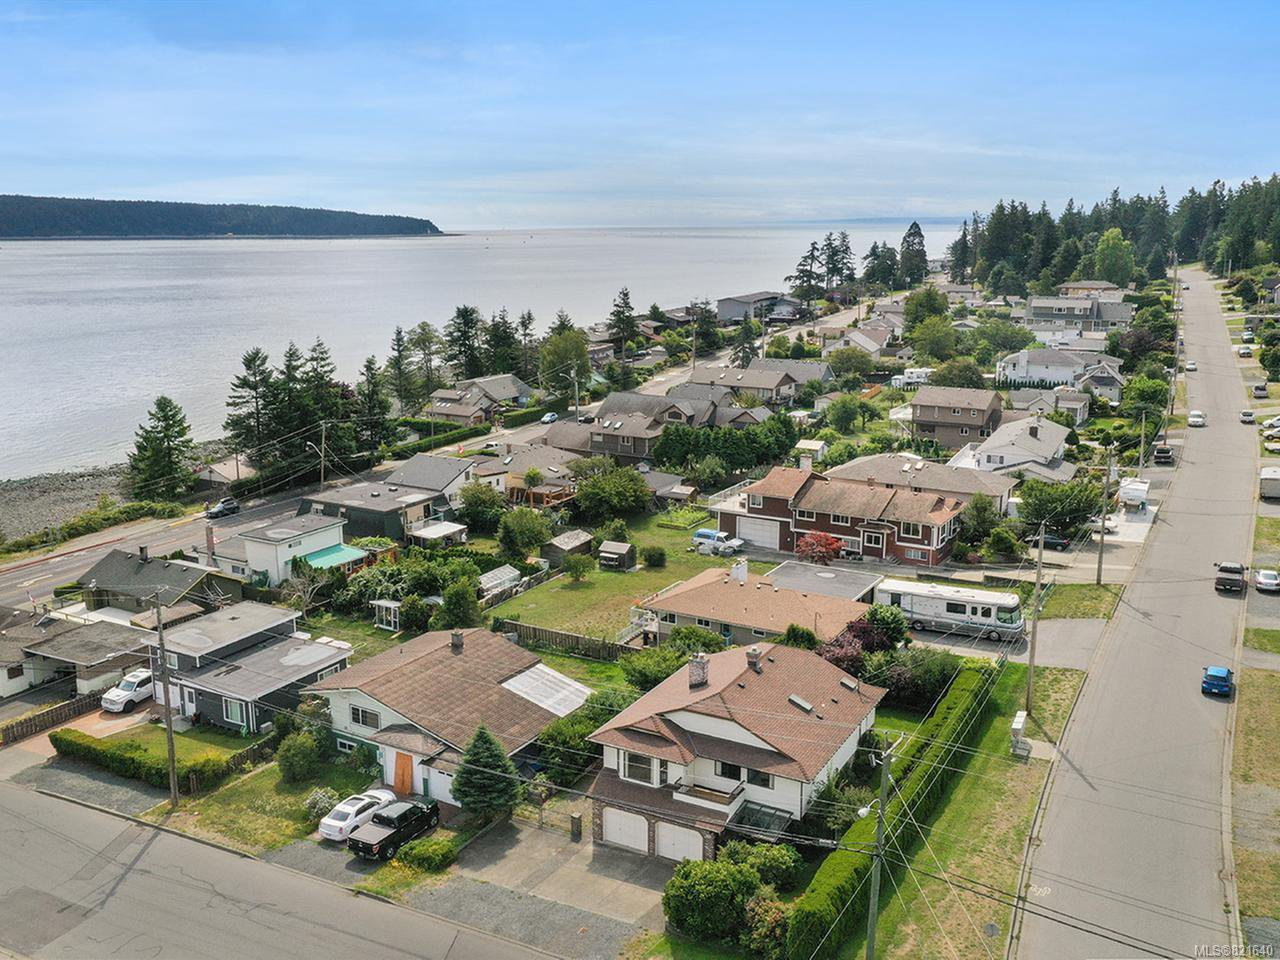 Main Photo: 71 6th Ave in CAMPBELL RIVER: CR Campbell River Central House for sale (Campbell River)  : MLS®# 821640